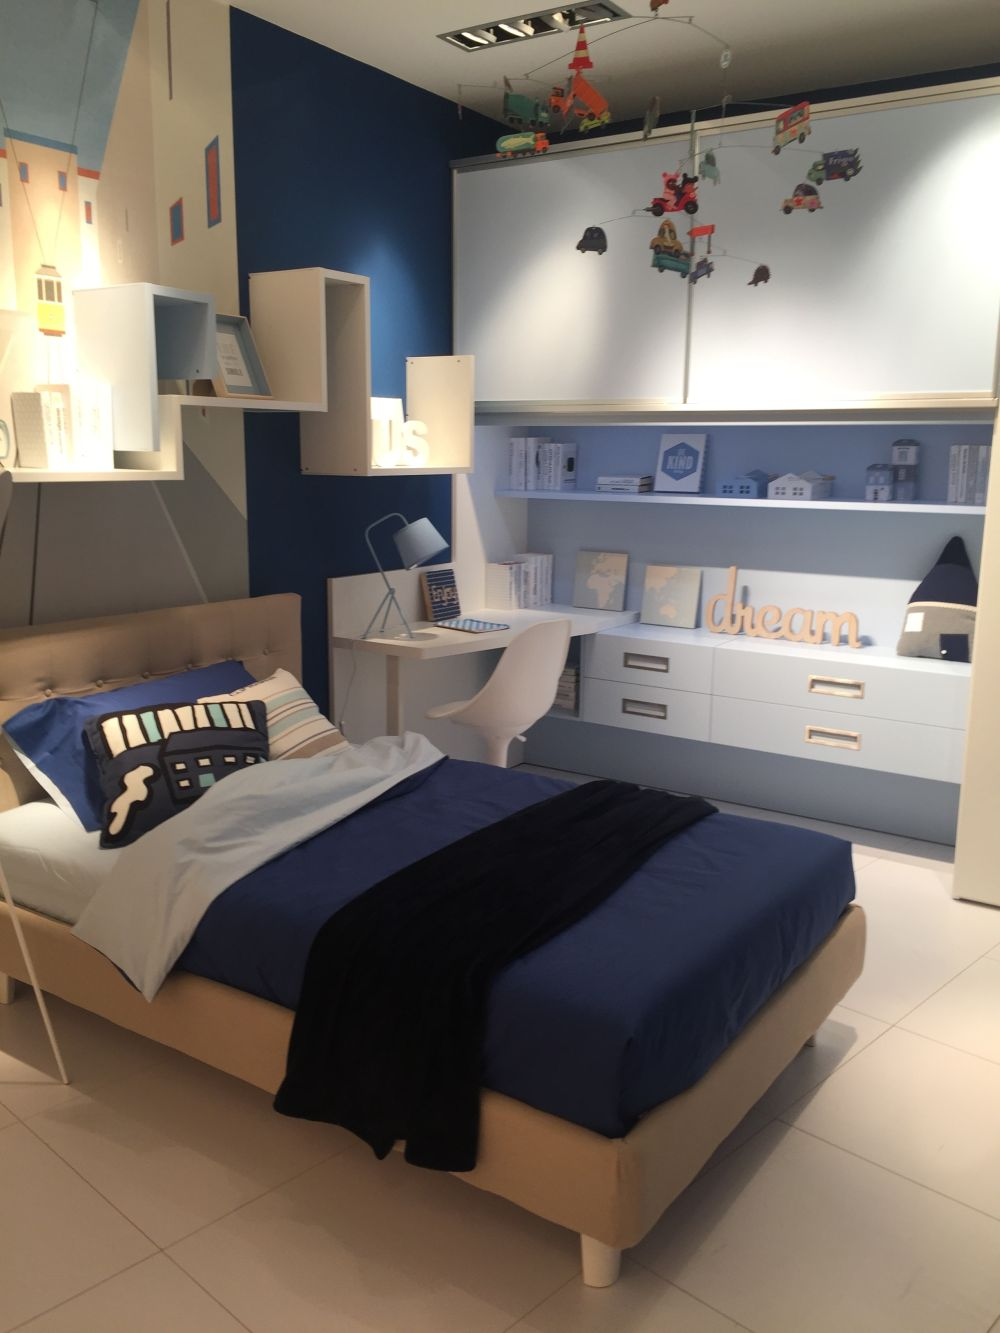 If space is limited, a desk can double as a nightstand if placed by the bed